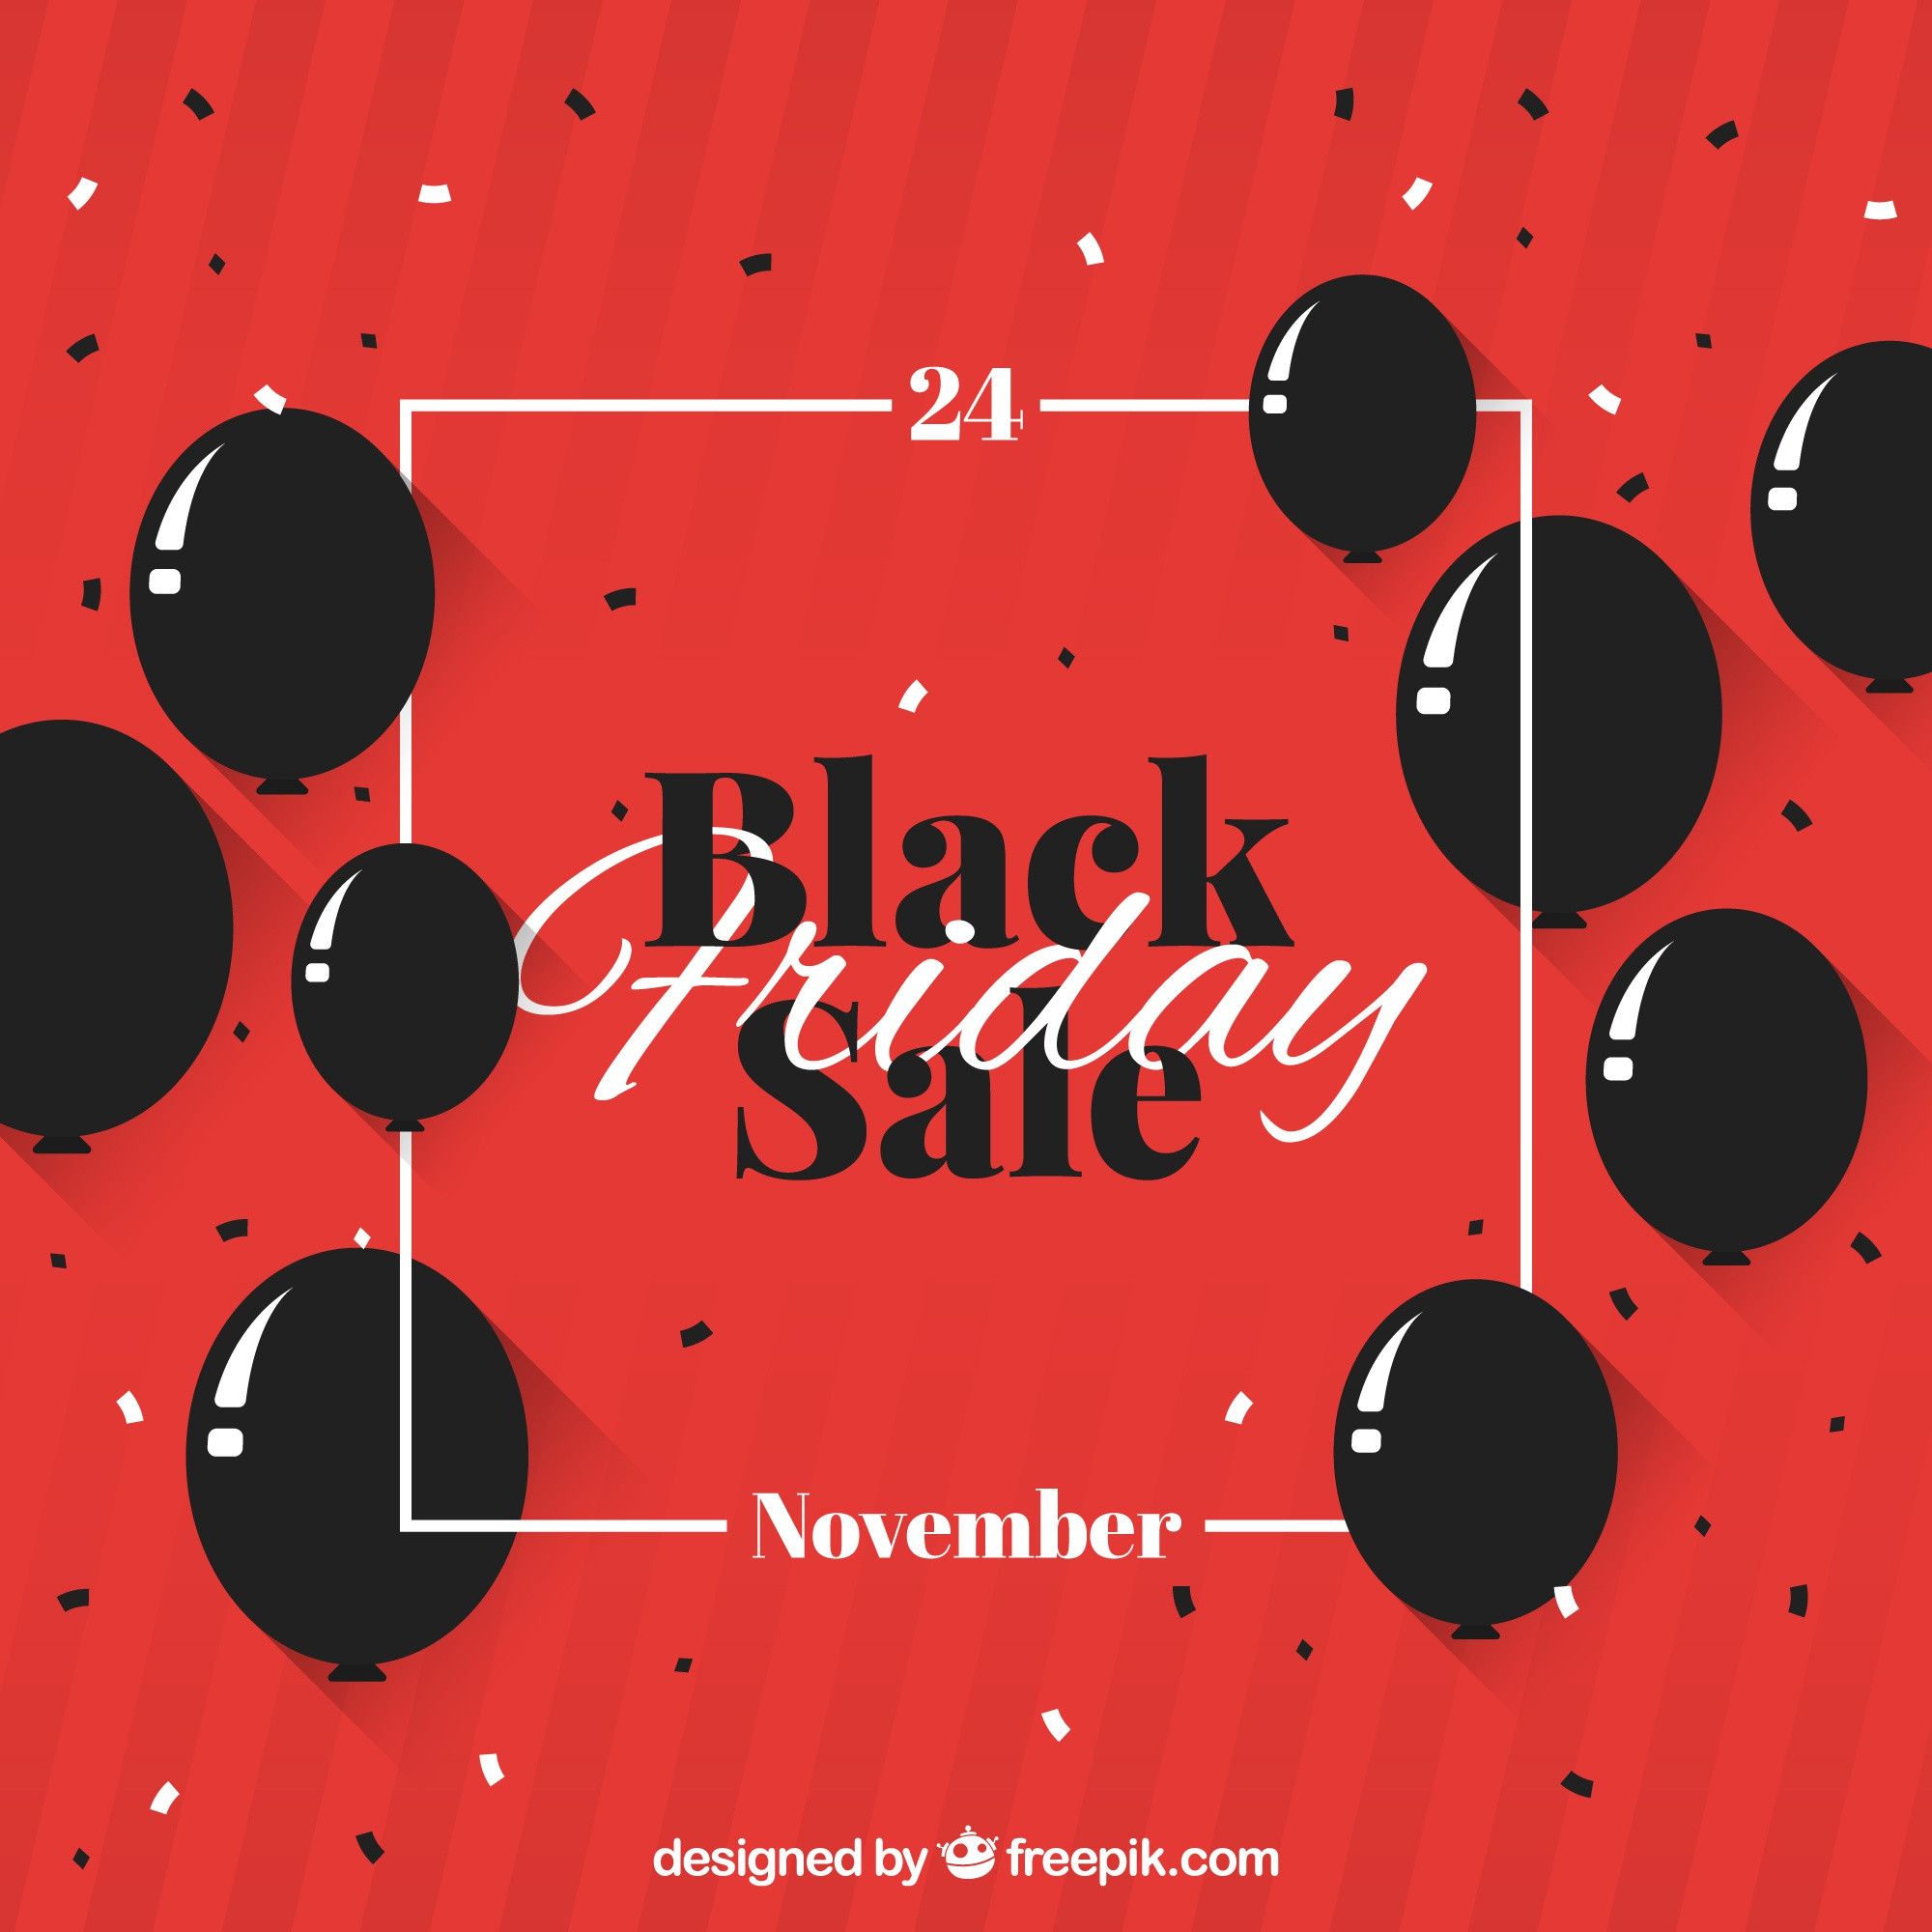 Black friday design with balloons and frame